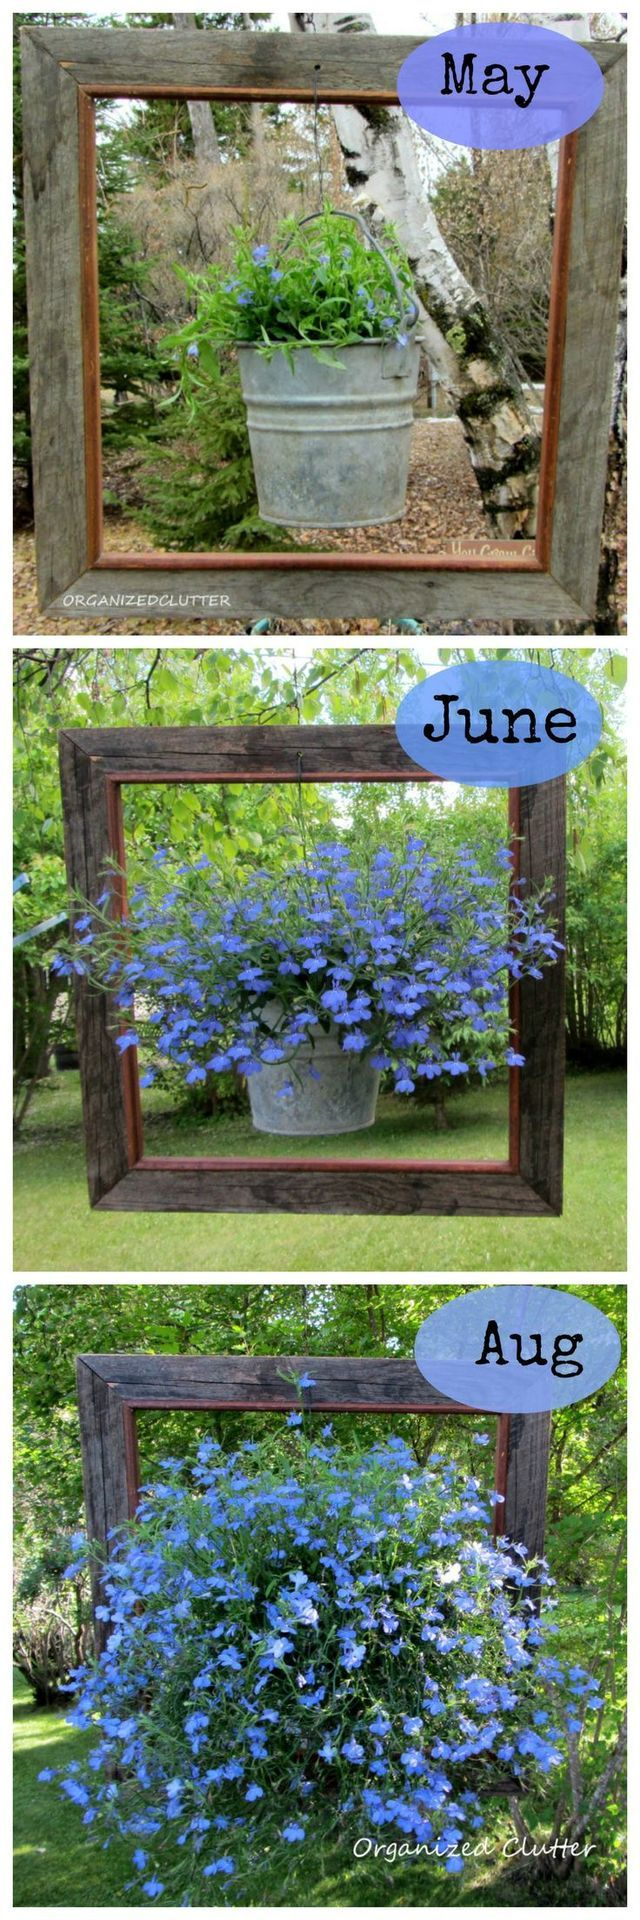 A Framed Lobelia... Like the framed hanging basket idea